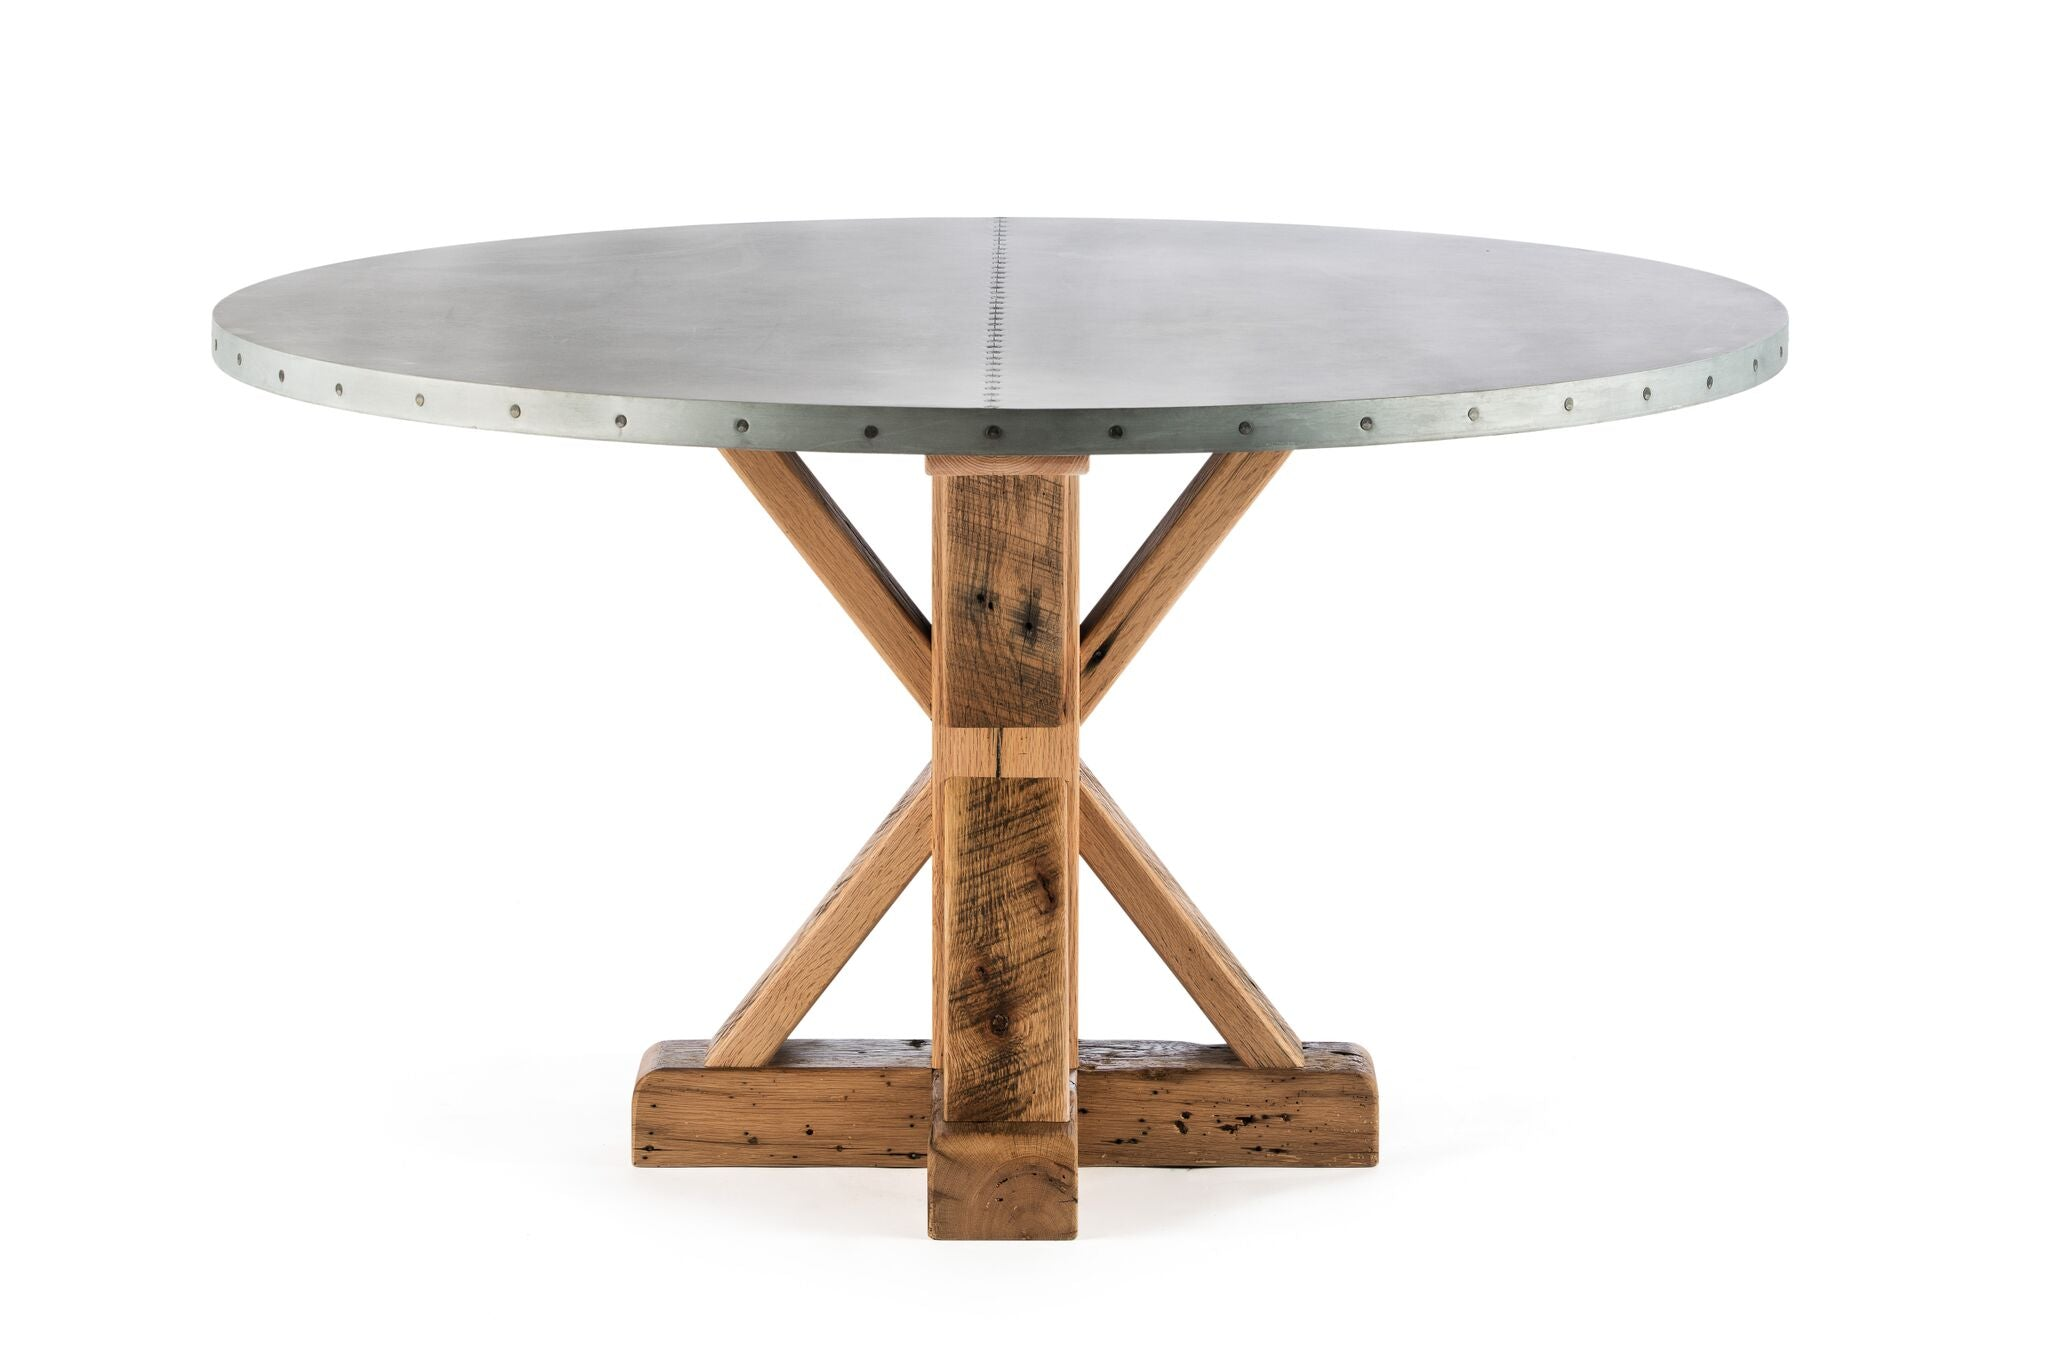 Zinc Round Tables | French Trestle Table | CLASSIC | Americana on Reclaimed Oak | CUSTOM SIZE D 66 H 30 | 2.5"